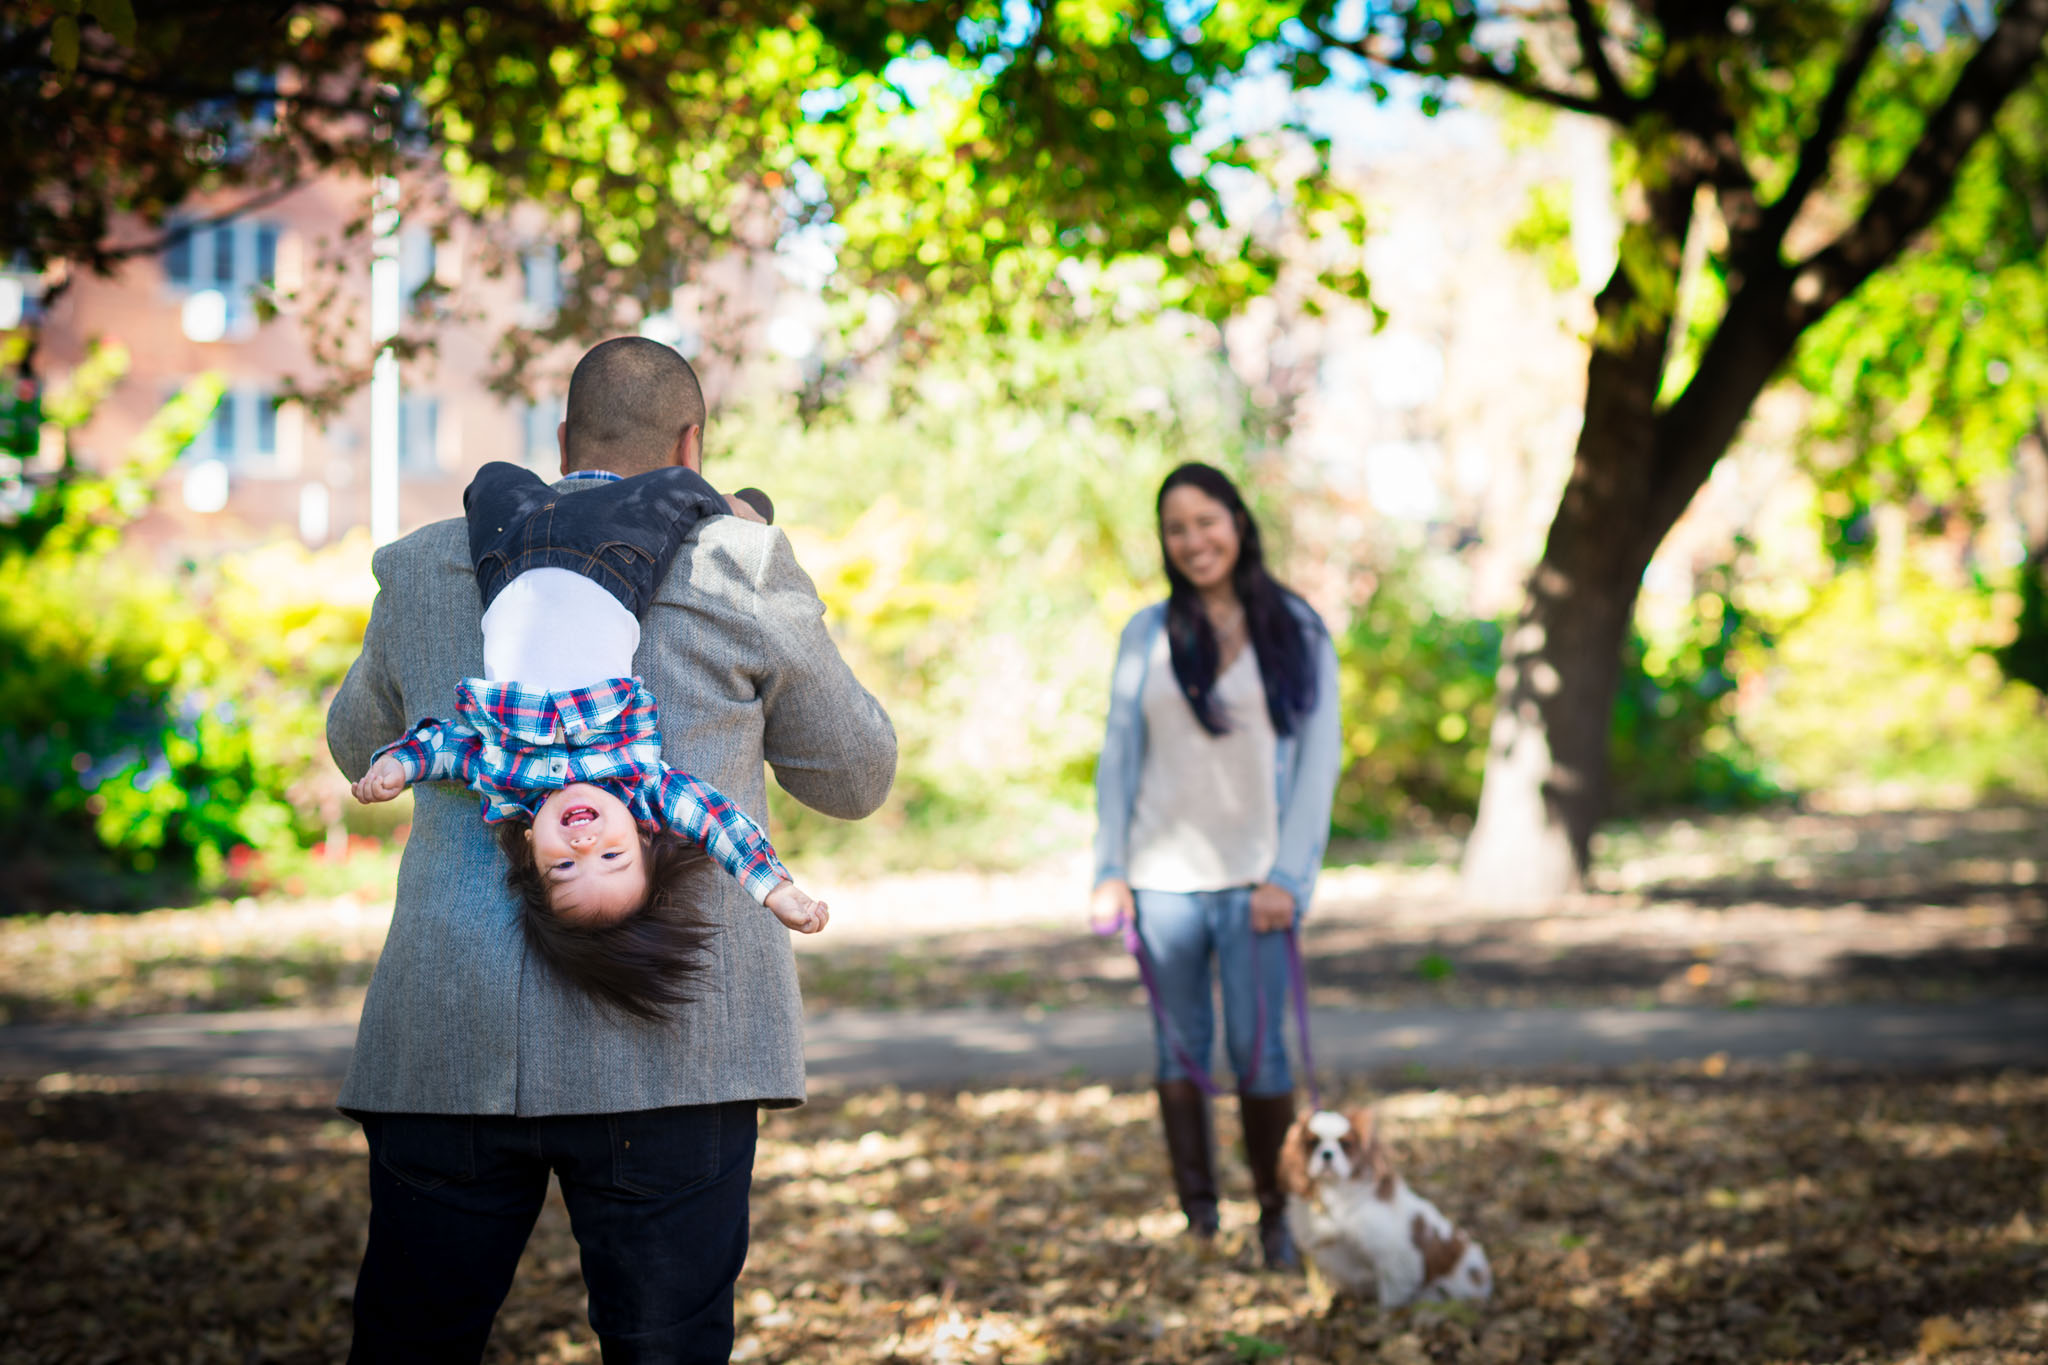 How to Prepare for a Family Portrait Photography Session?